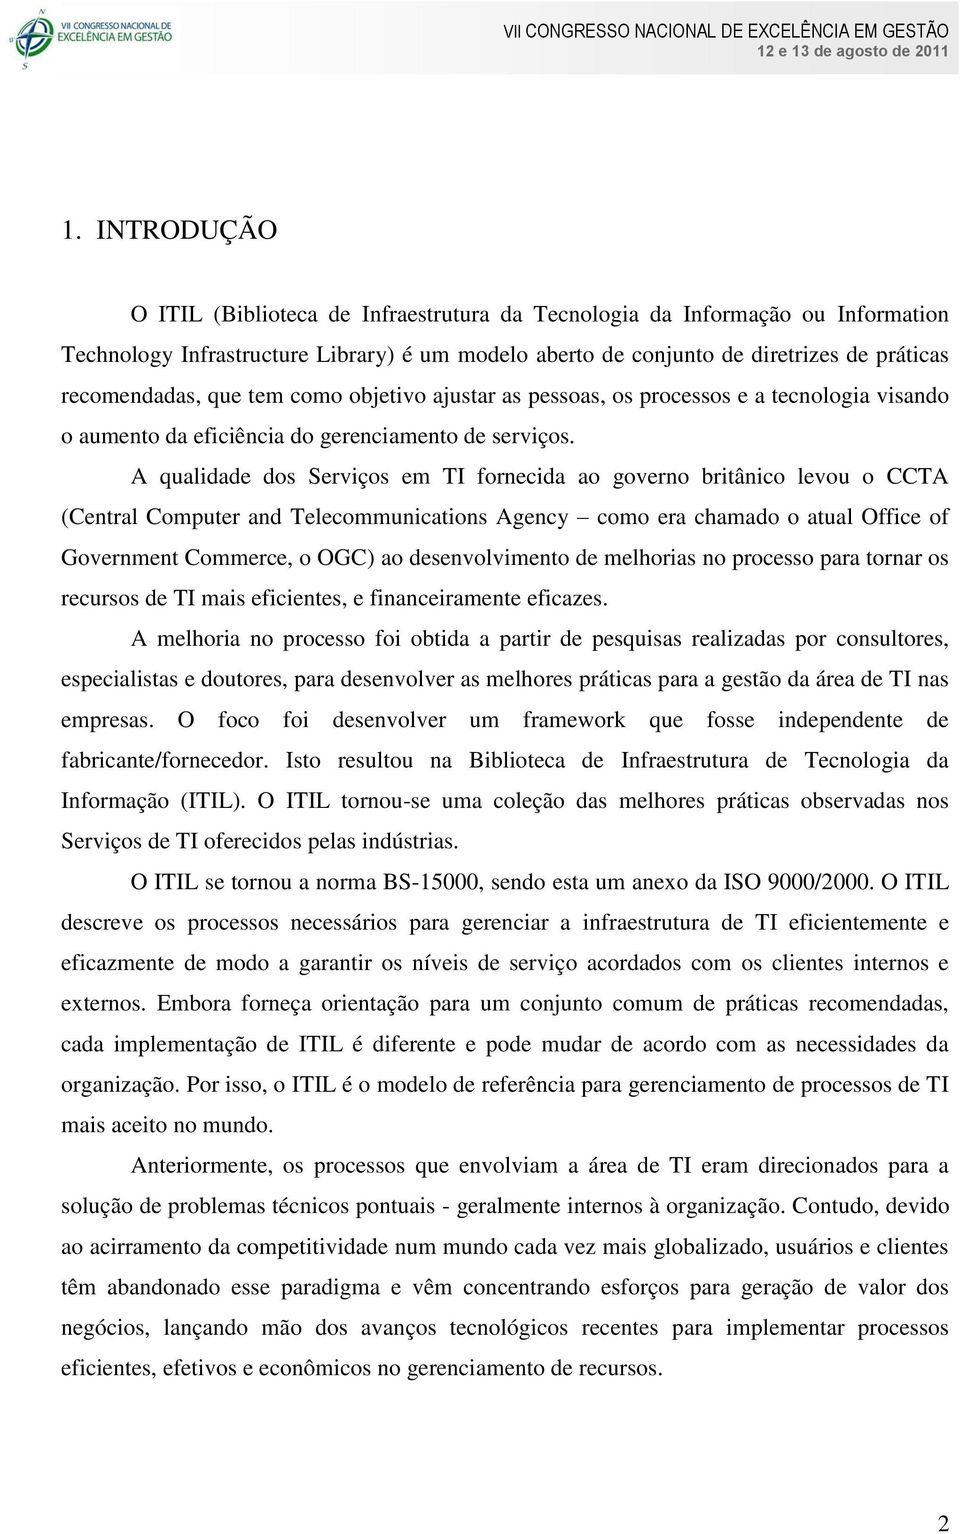 A qualidade dos Serviços em TI fornecida ao governo britânico levou o CCTA (Central Computer and Telecommunications Agency como era chamado o atual Office of Government Commerce, o OGC) ao